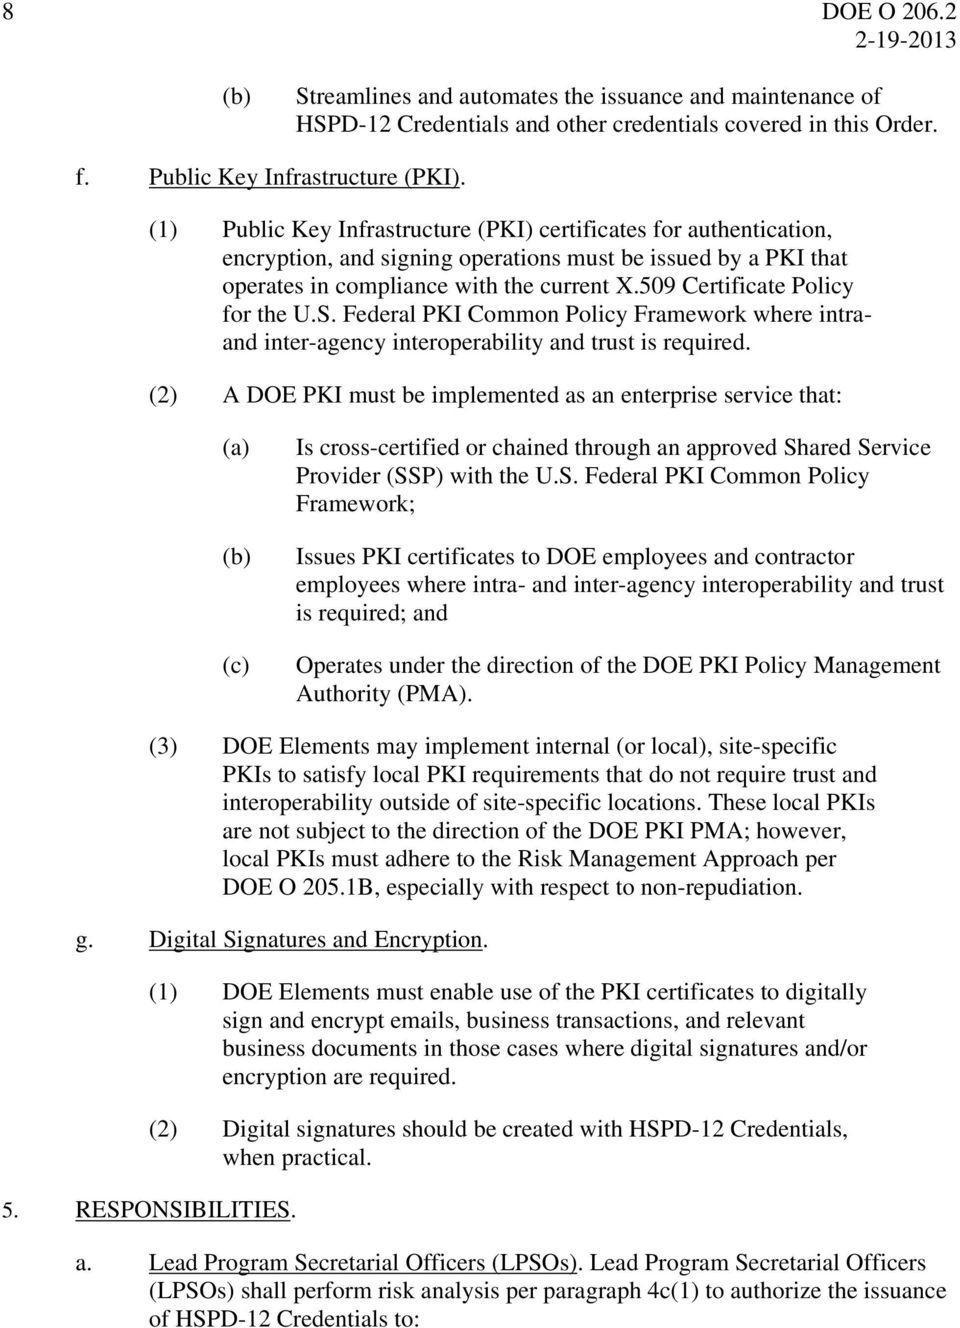 509 Certificate Policy for the U.S. Federal PKI Common Policy Framework where intraand inter-agency interoperability and trust is required.